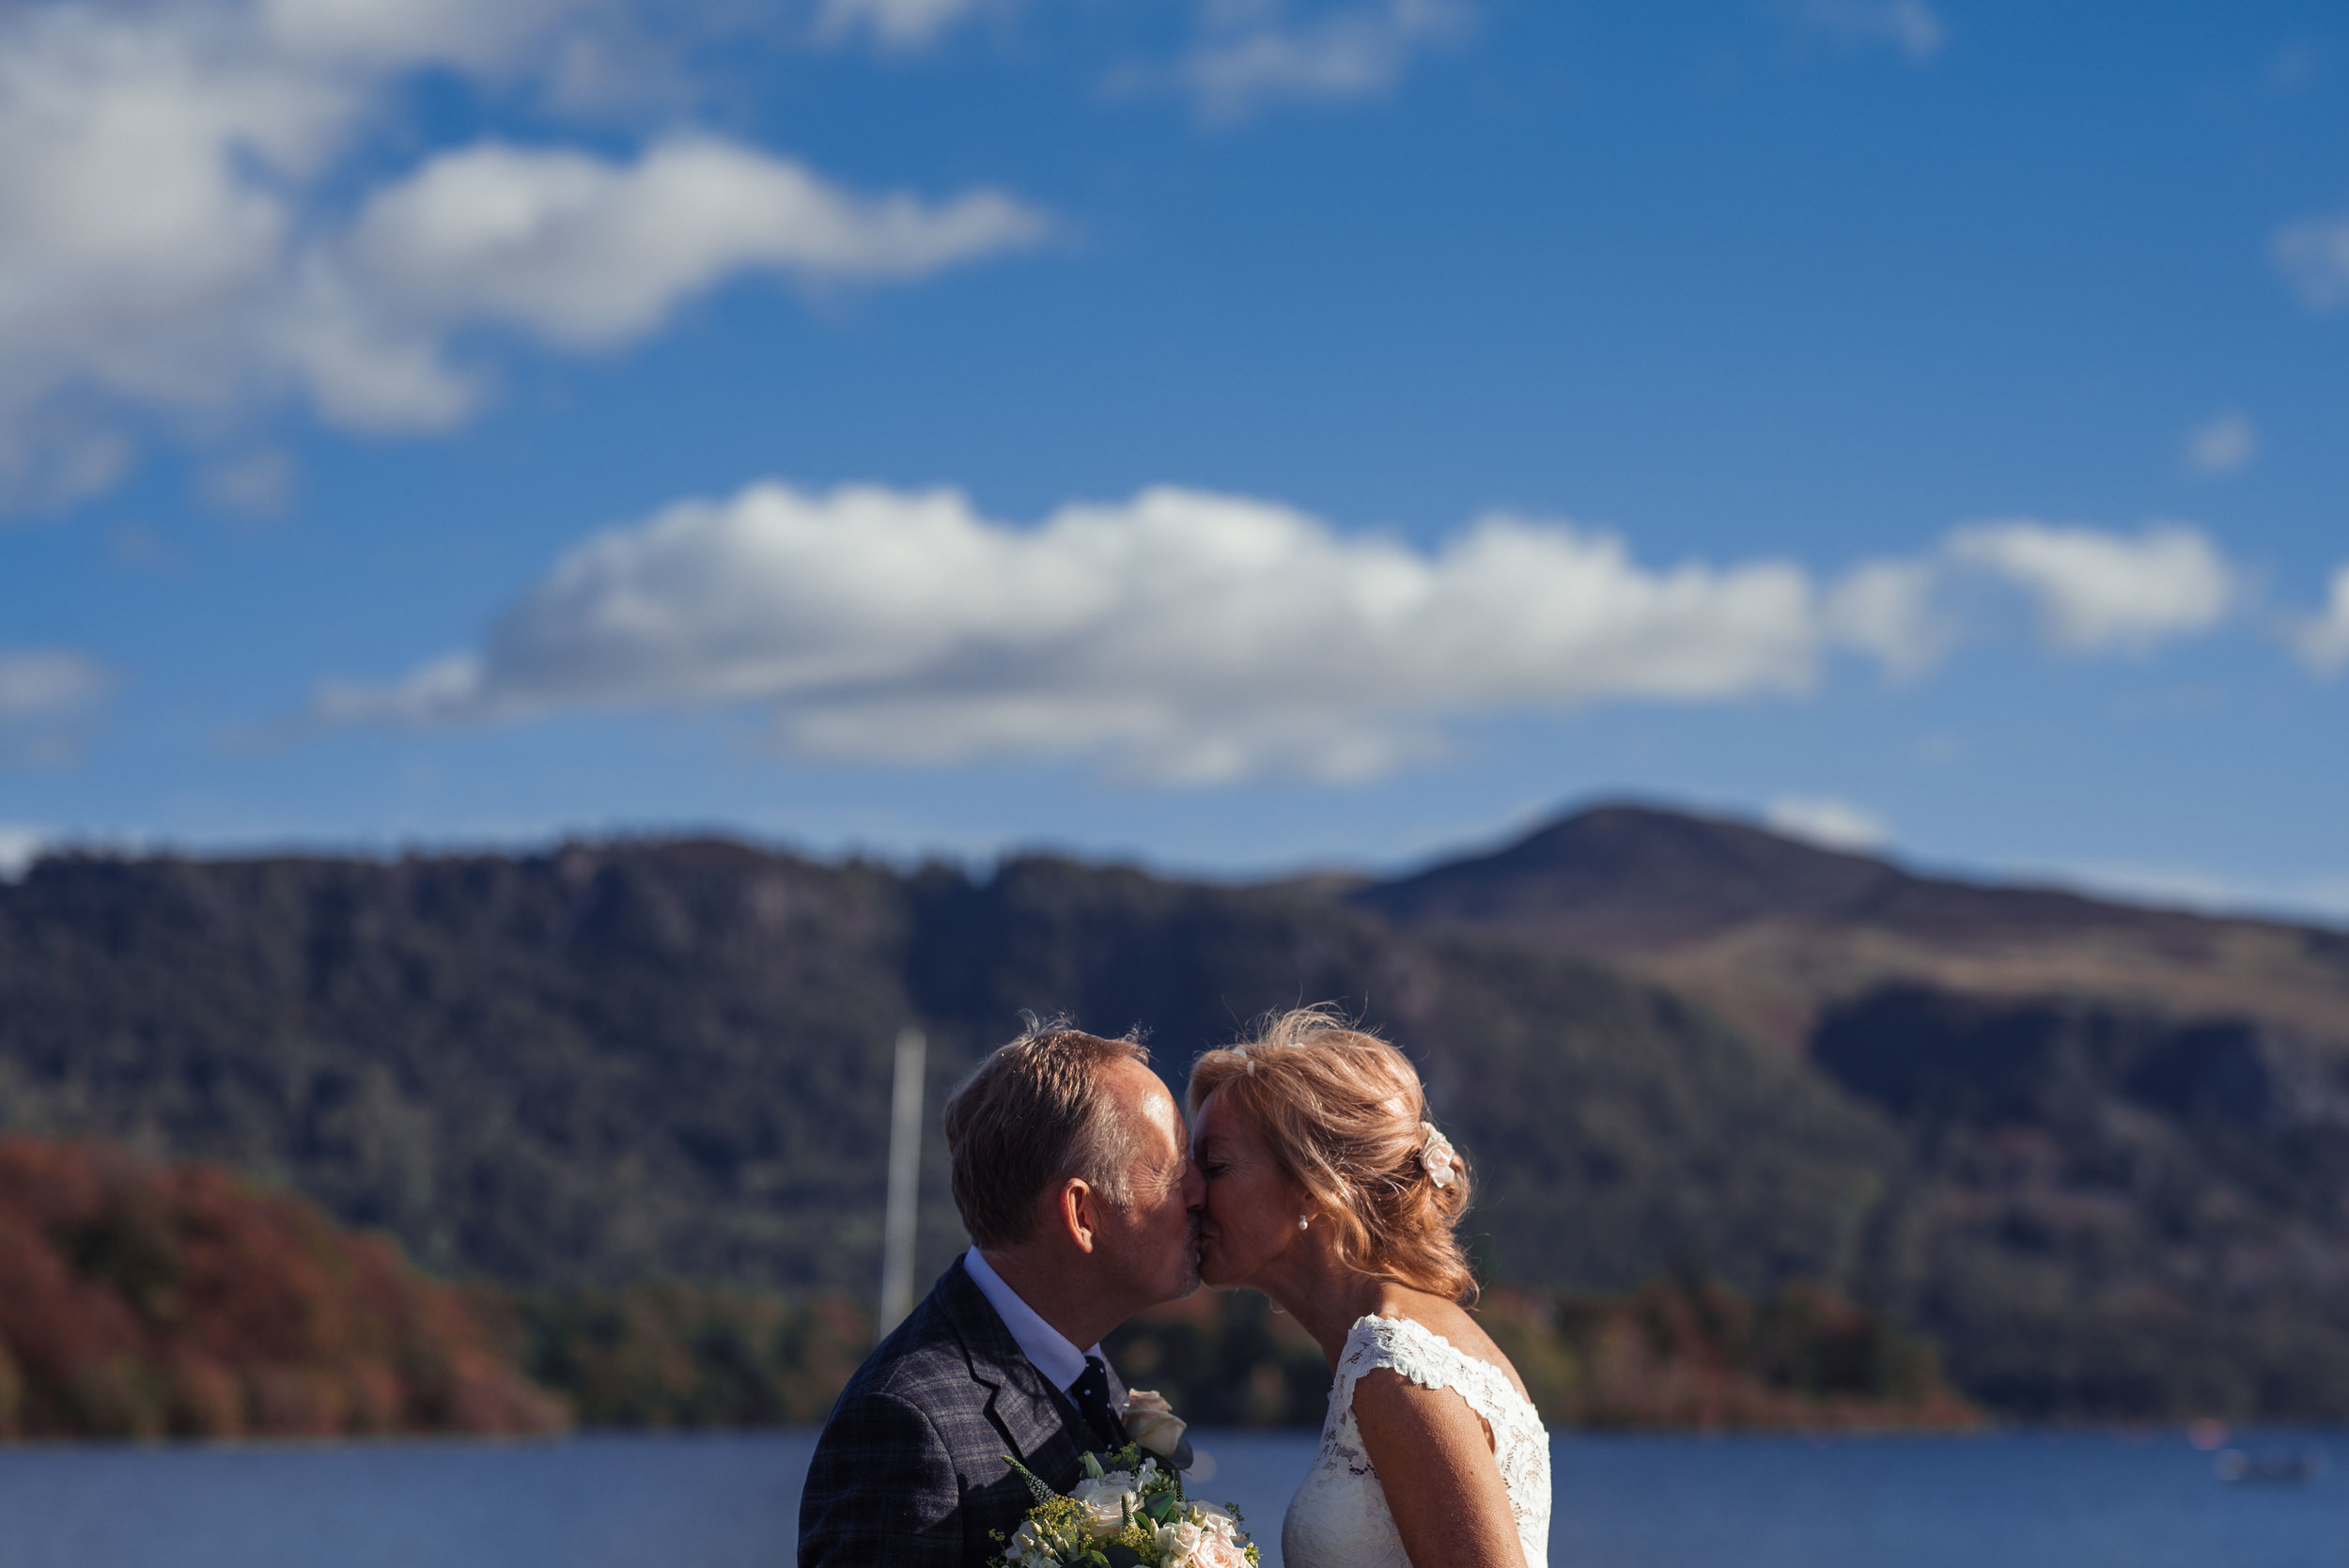 The bride and groom share a kiss during their lake district wedding photography